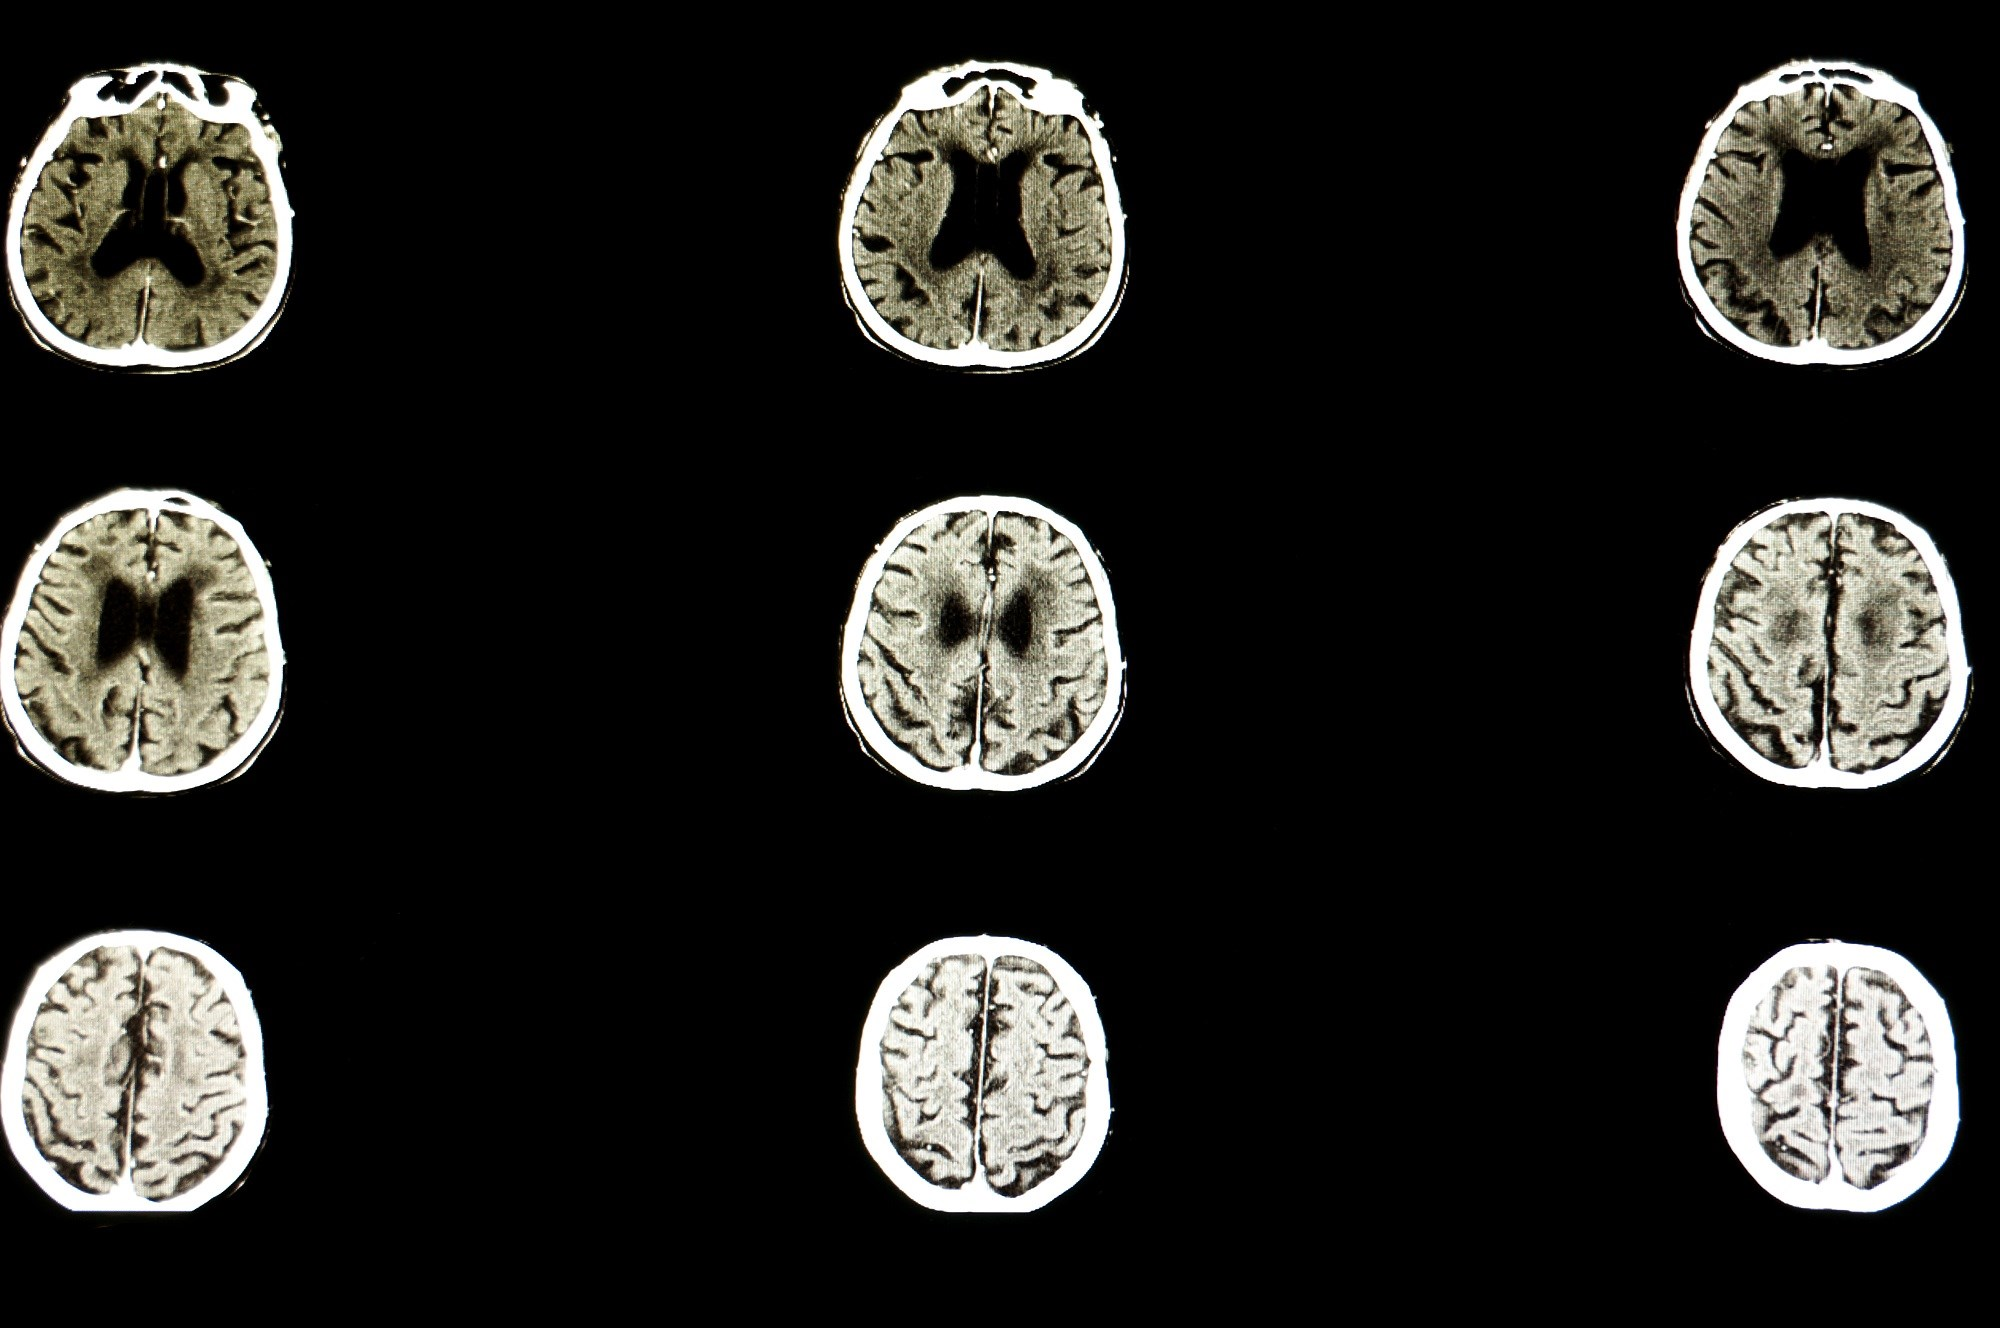 Ibudilast Appears to Slow Brain Atrophy Progression in MS